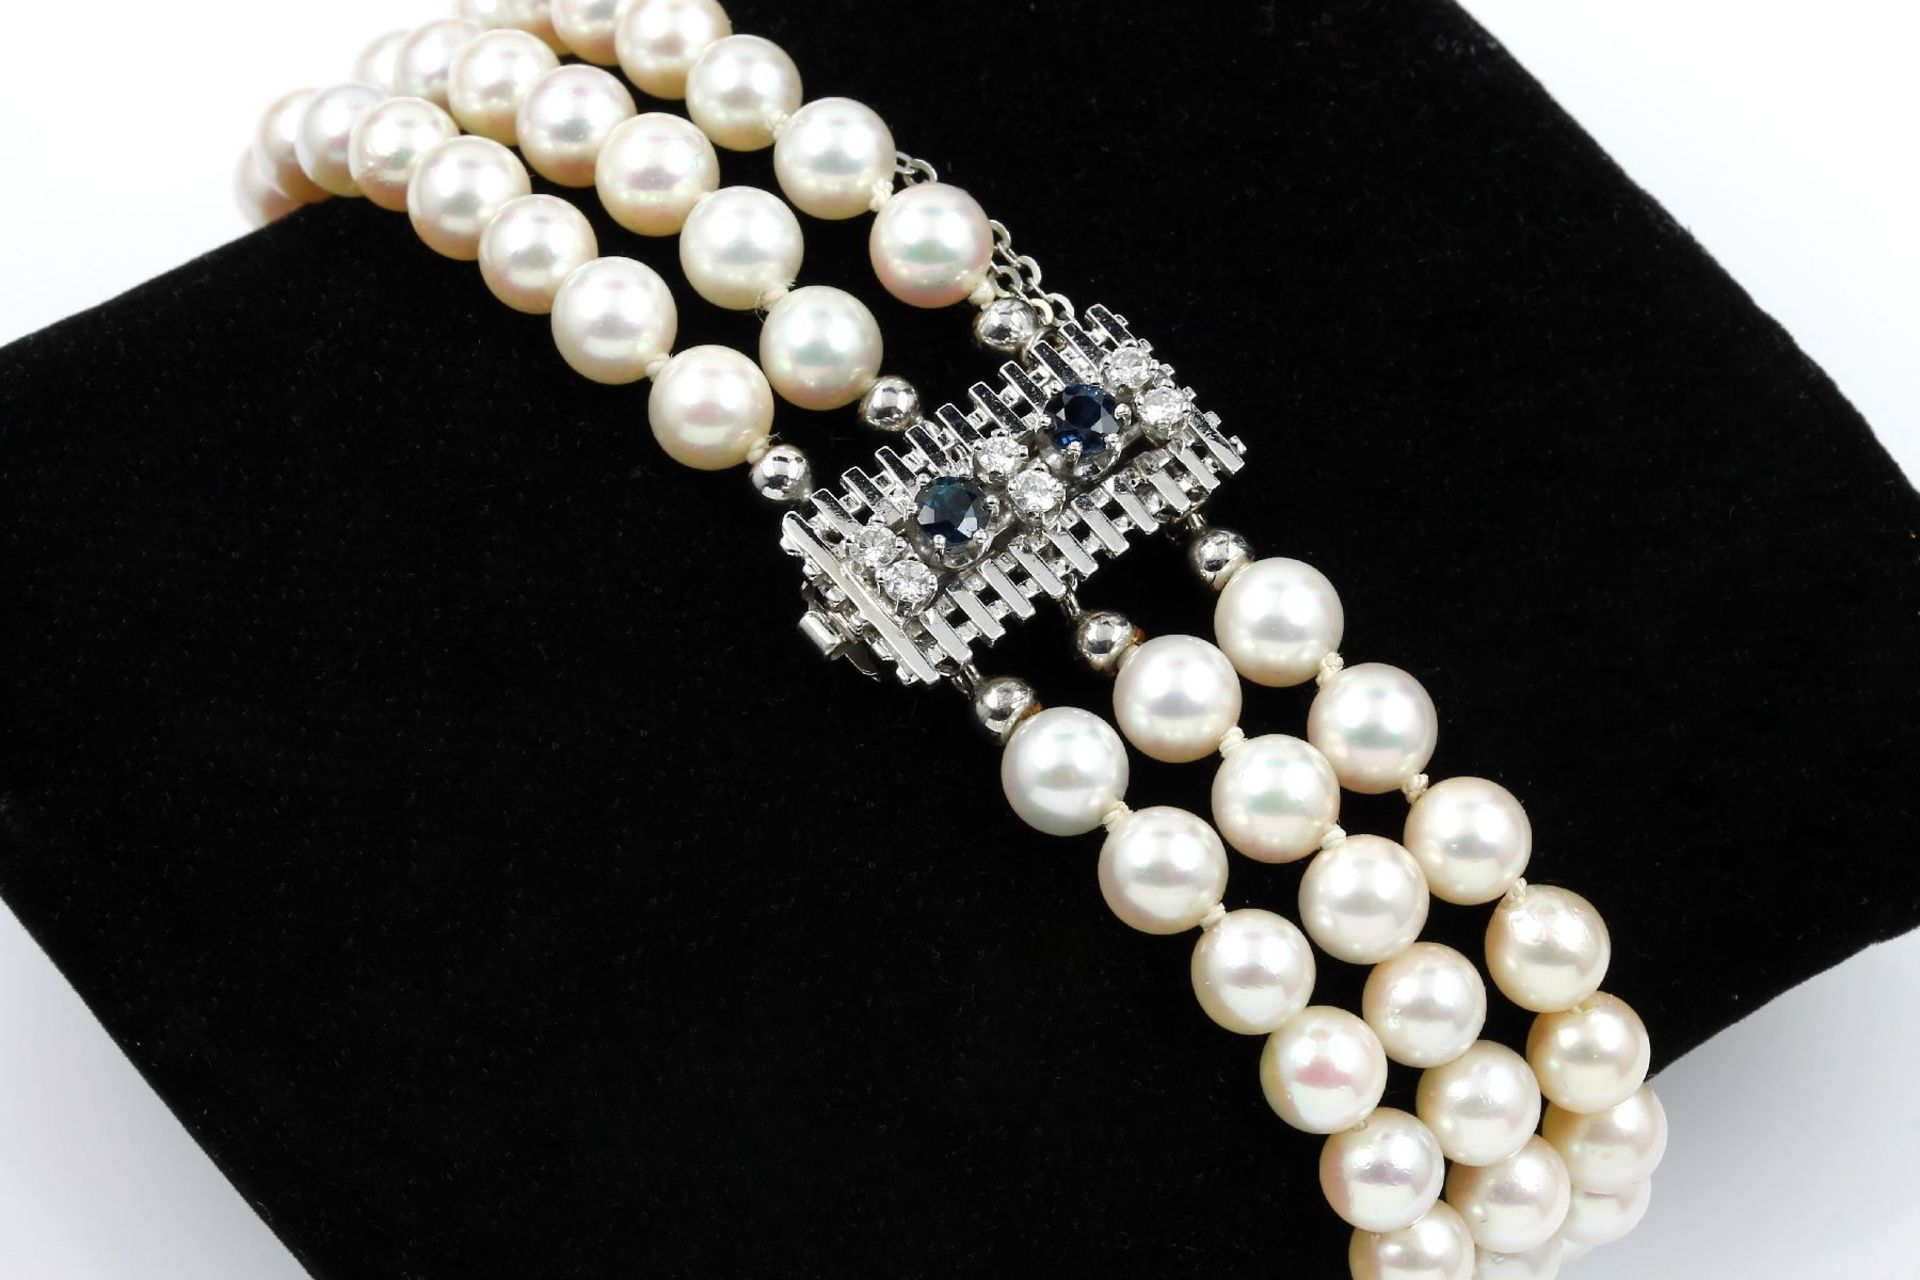 Los 61550 - 3-rowed bracelet made of cultured akoya pearls , clasp WG 585/000, 2 round bevelled sapphires